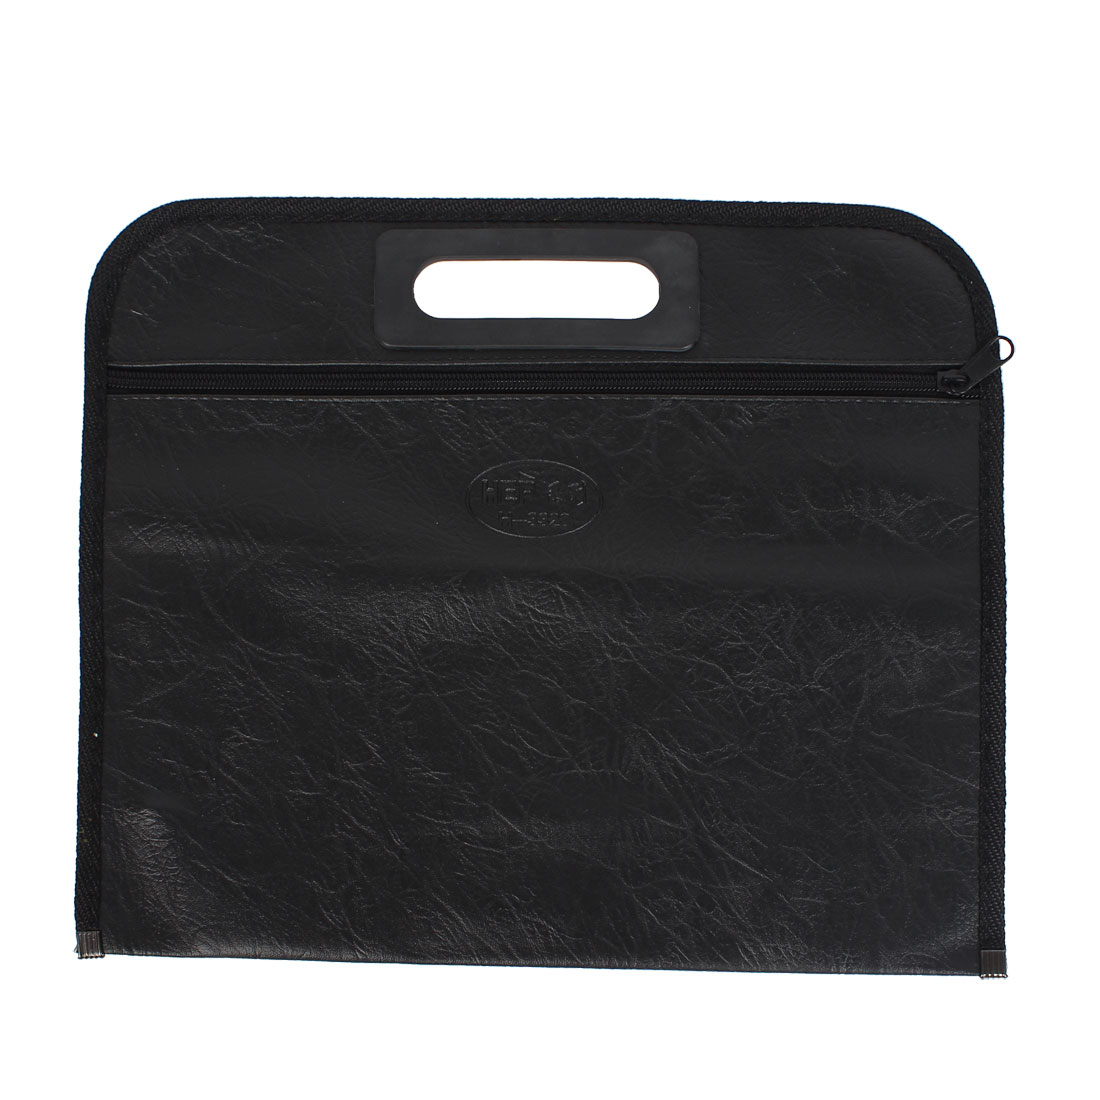 Protable Paper Pen Document Expanding Zippered One Compartment File Bag Holder Black